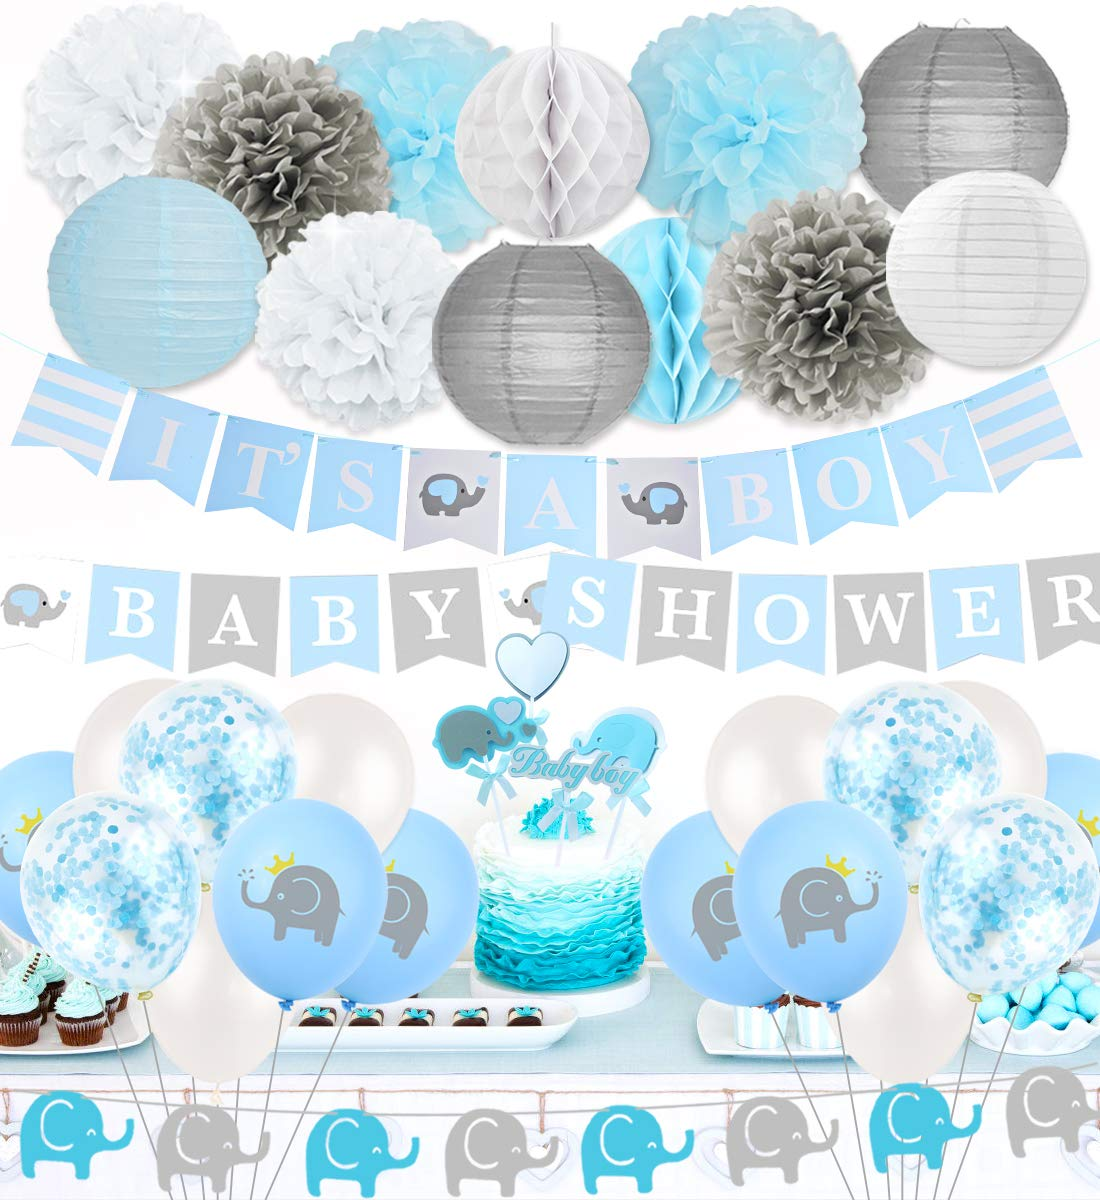 Elephant Baby Shower Decorations Little Peanut Baby Shower Party Supplies Blue with IT' s A Boy Banner Baby Shower Letter Banner and Cake Toppers